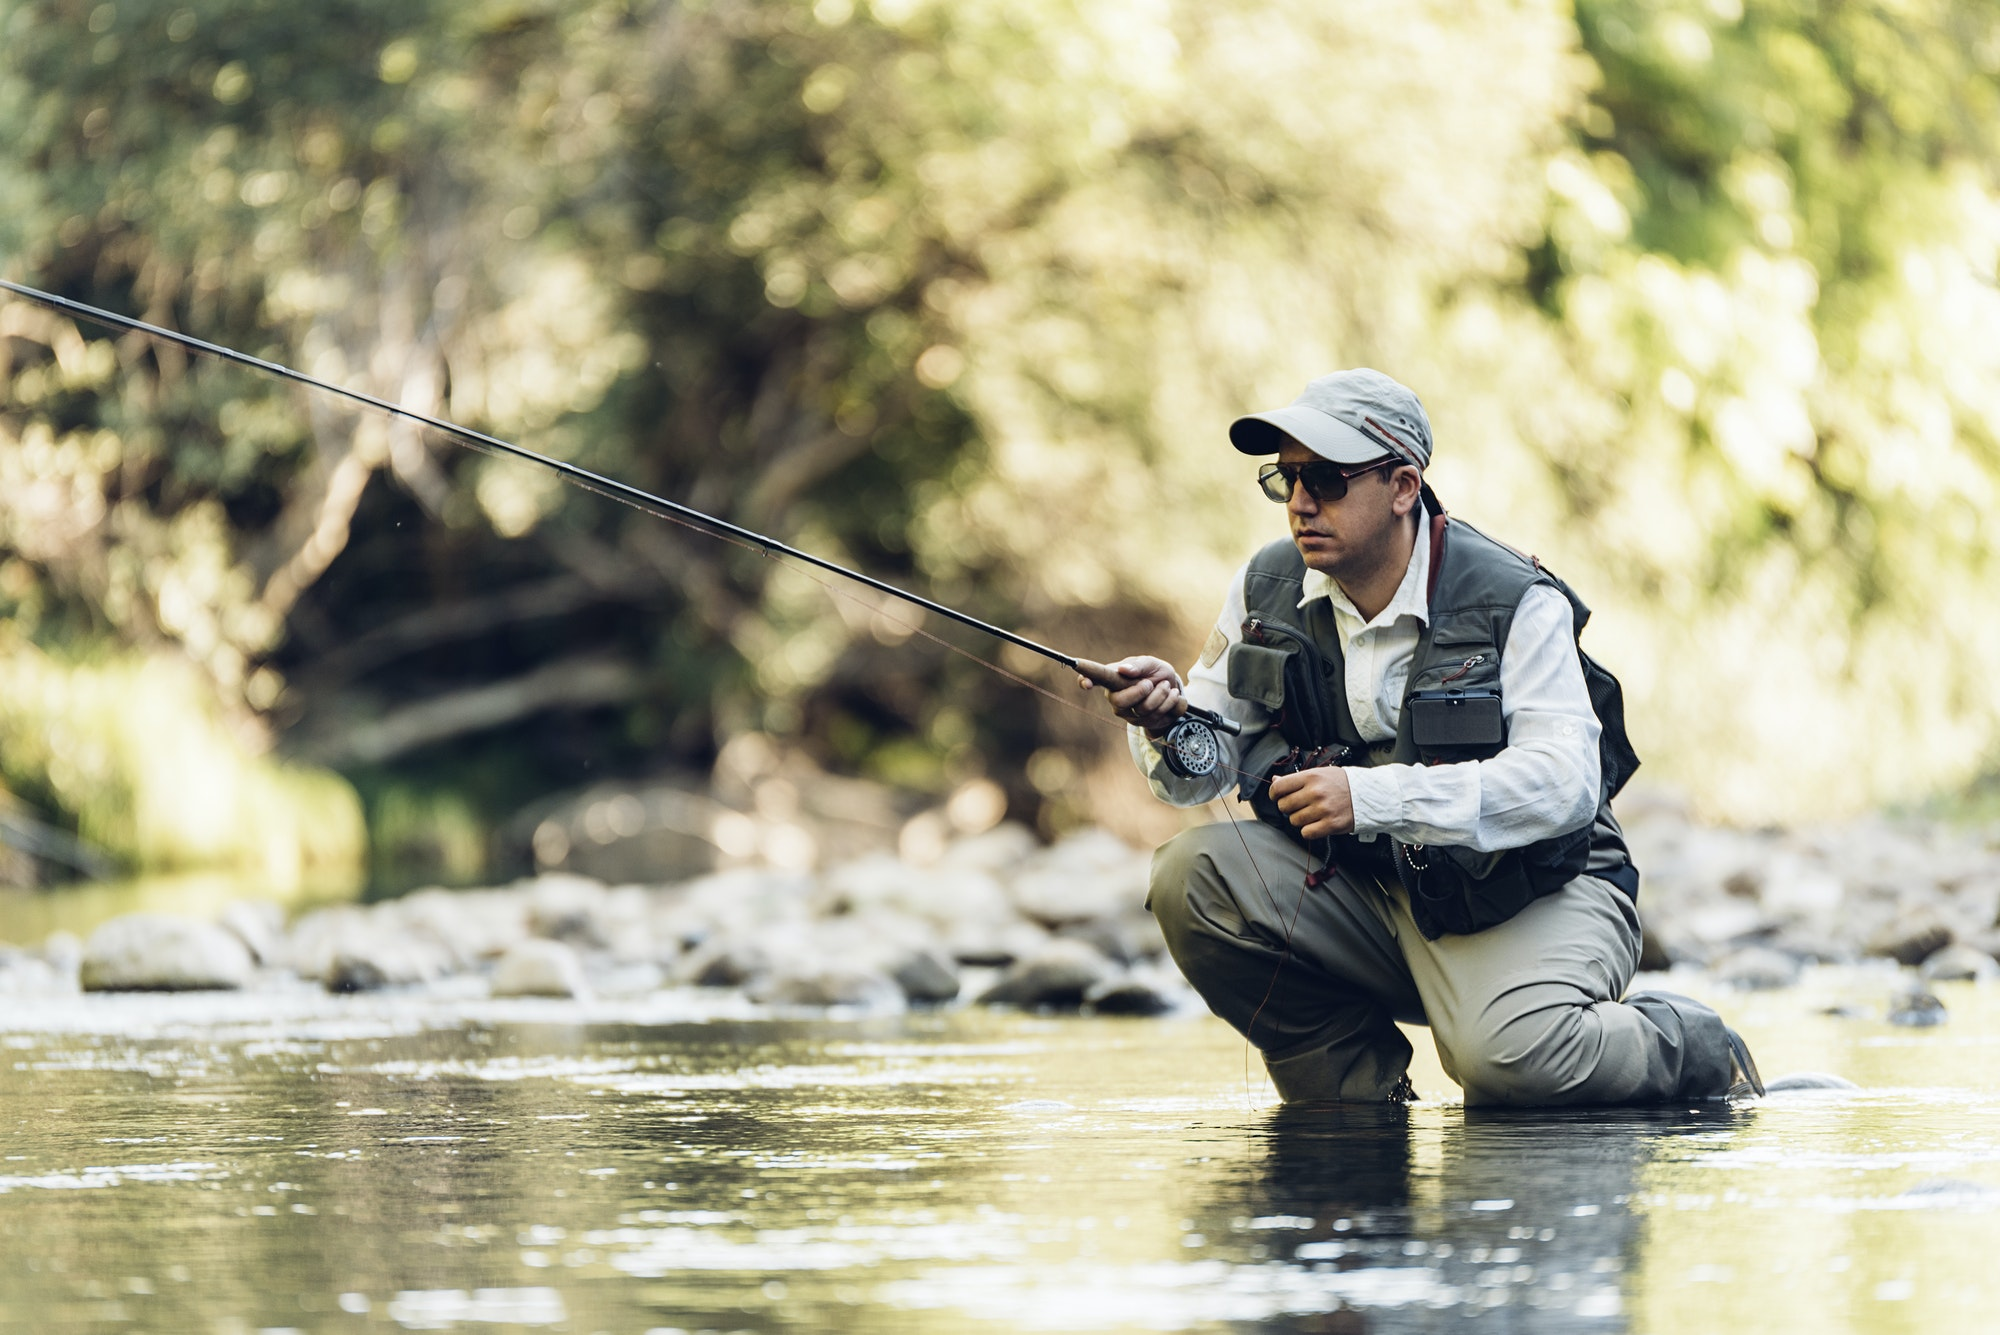 Making a bamboo fly rod is not a bridge too far